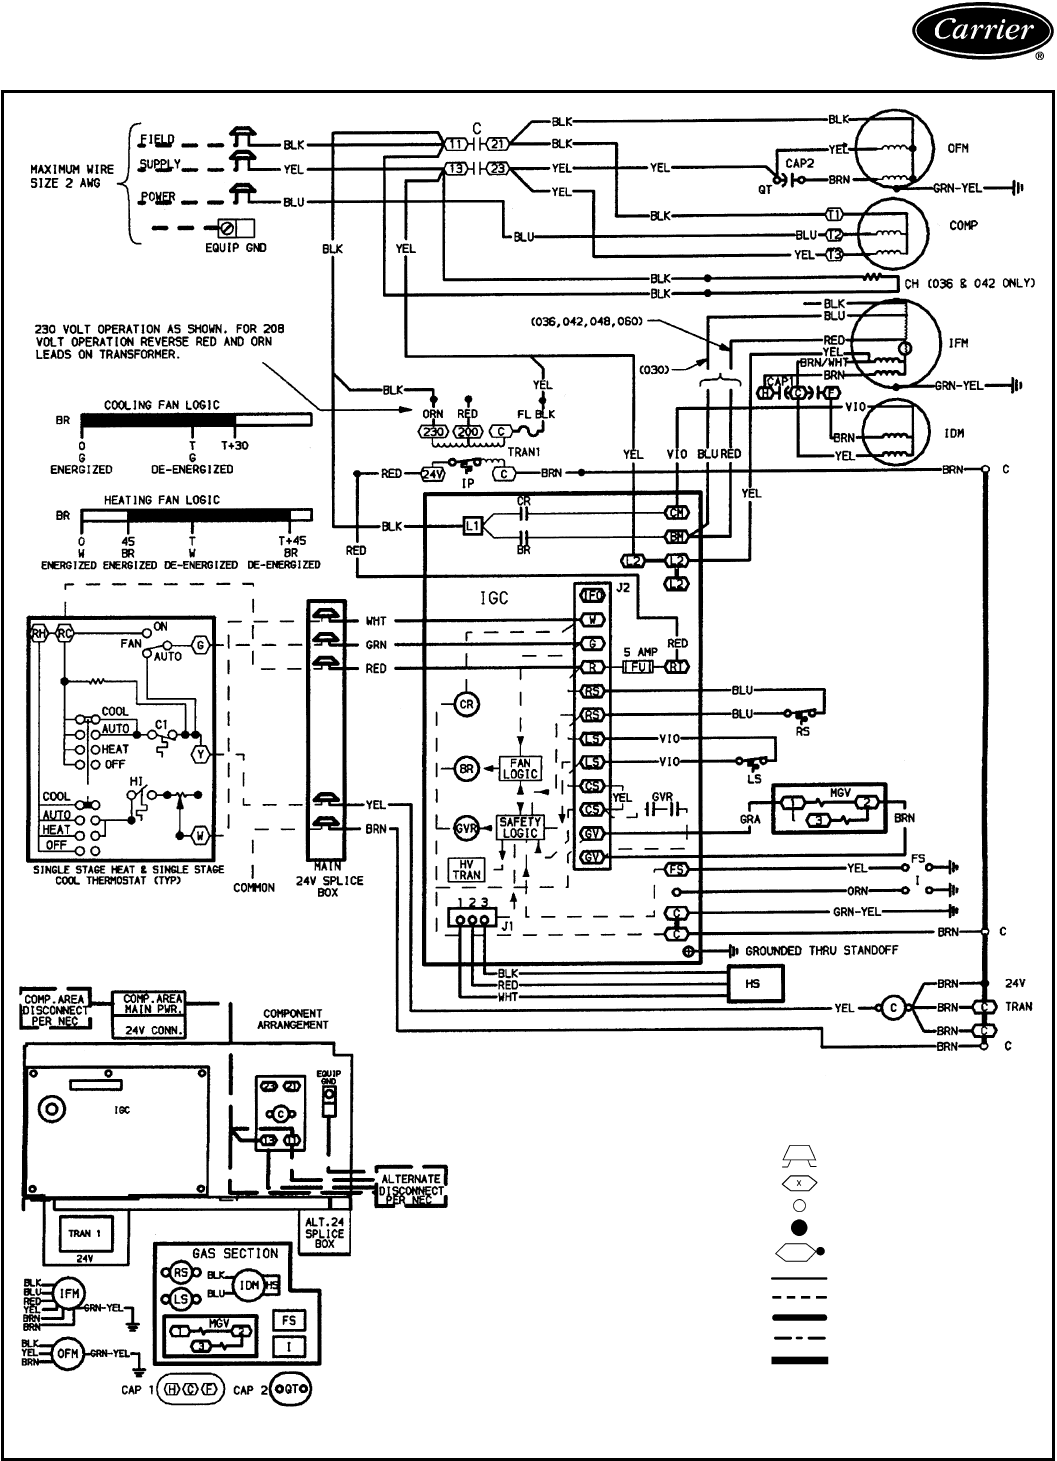 carrier package unit furnace wiring diagram get free image about wiring diagram